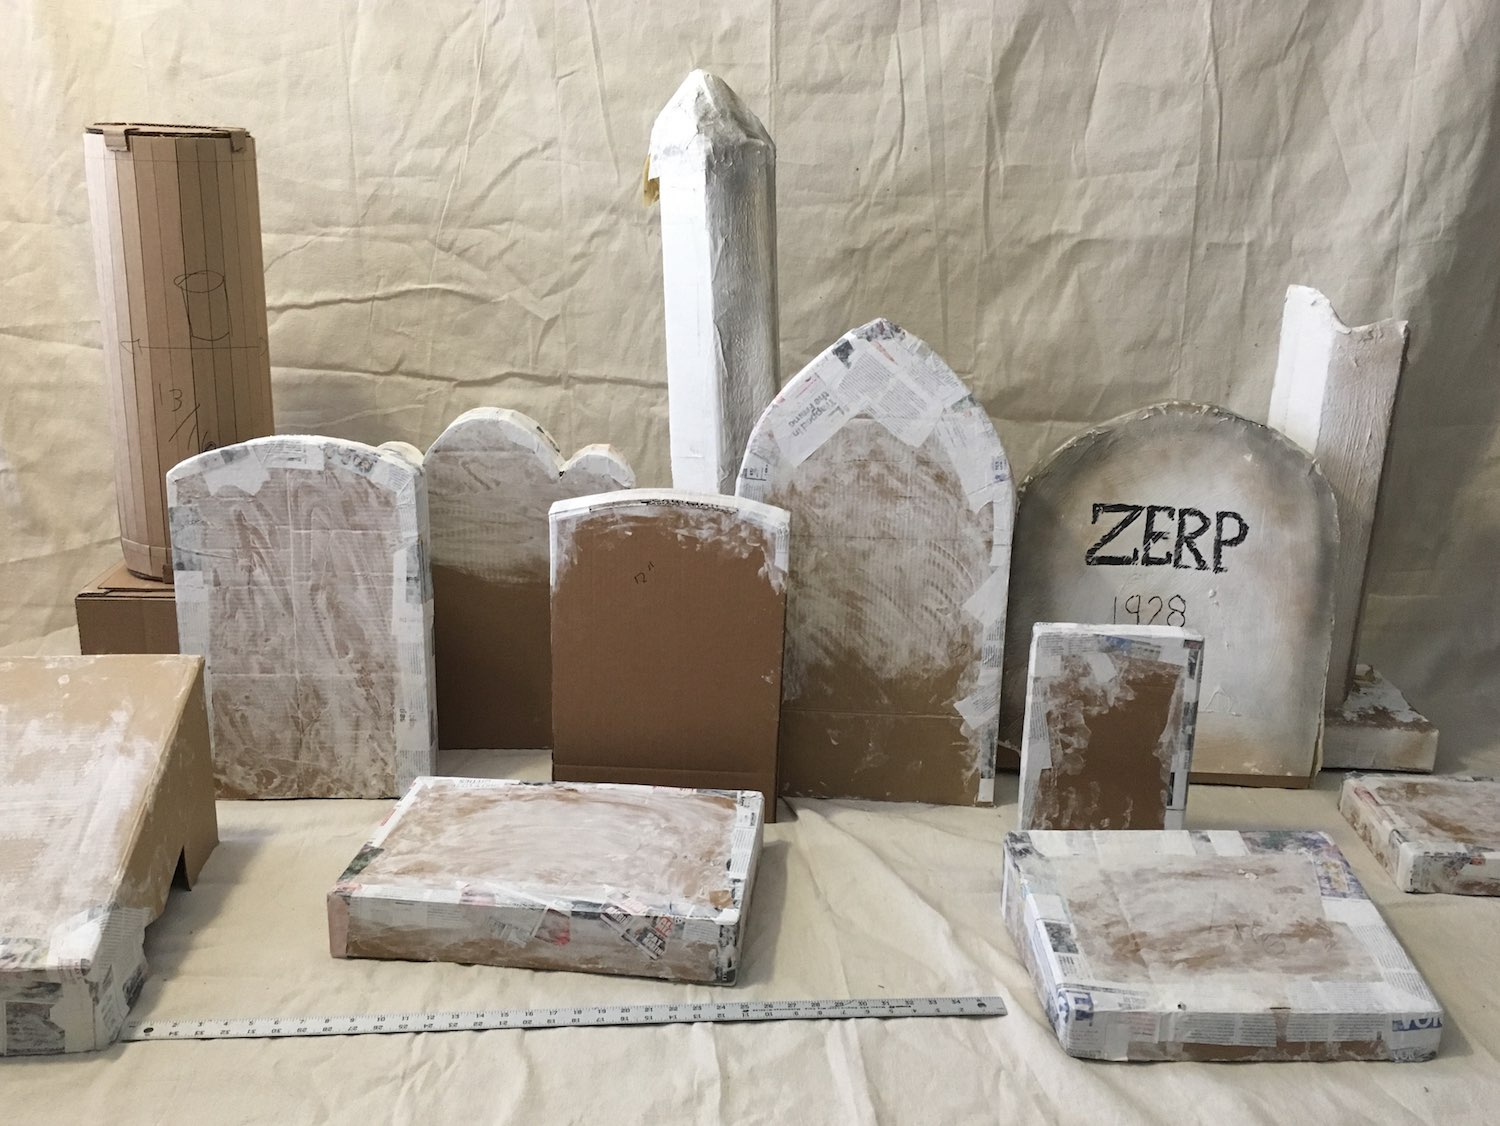 Cardboard and papier-mâché grave markers in progress